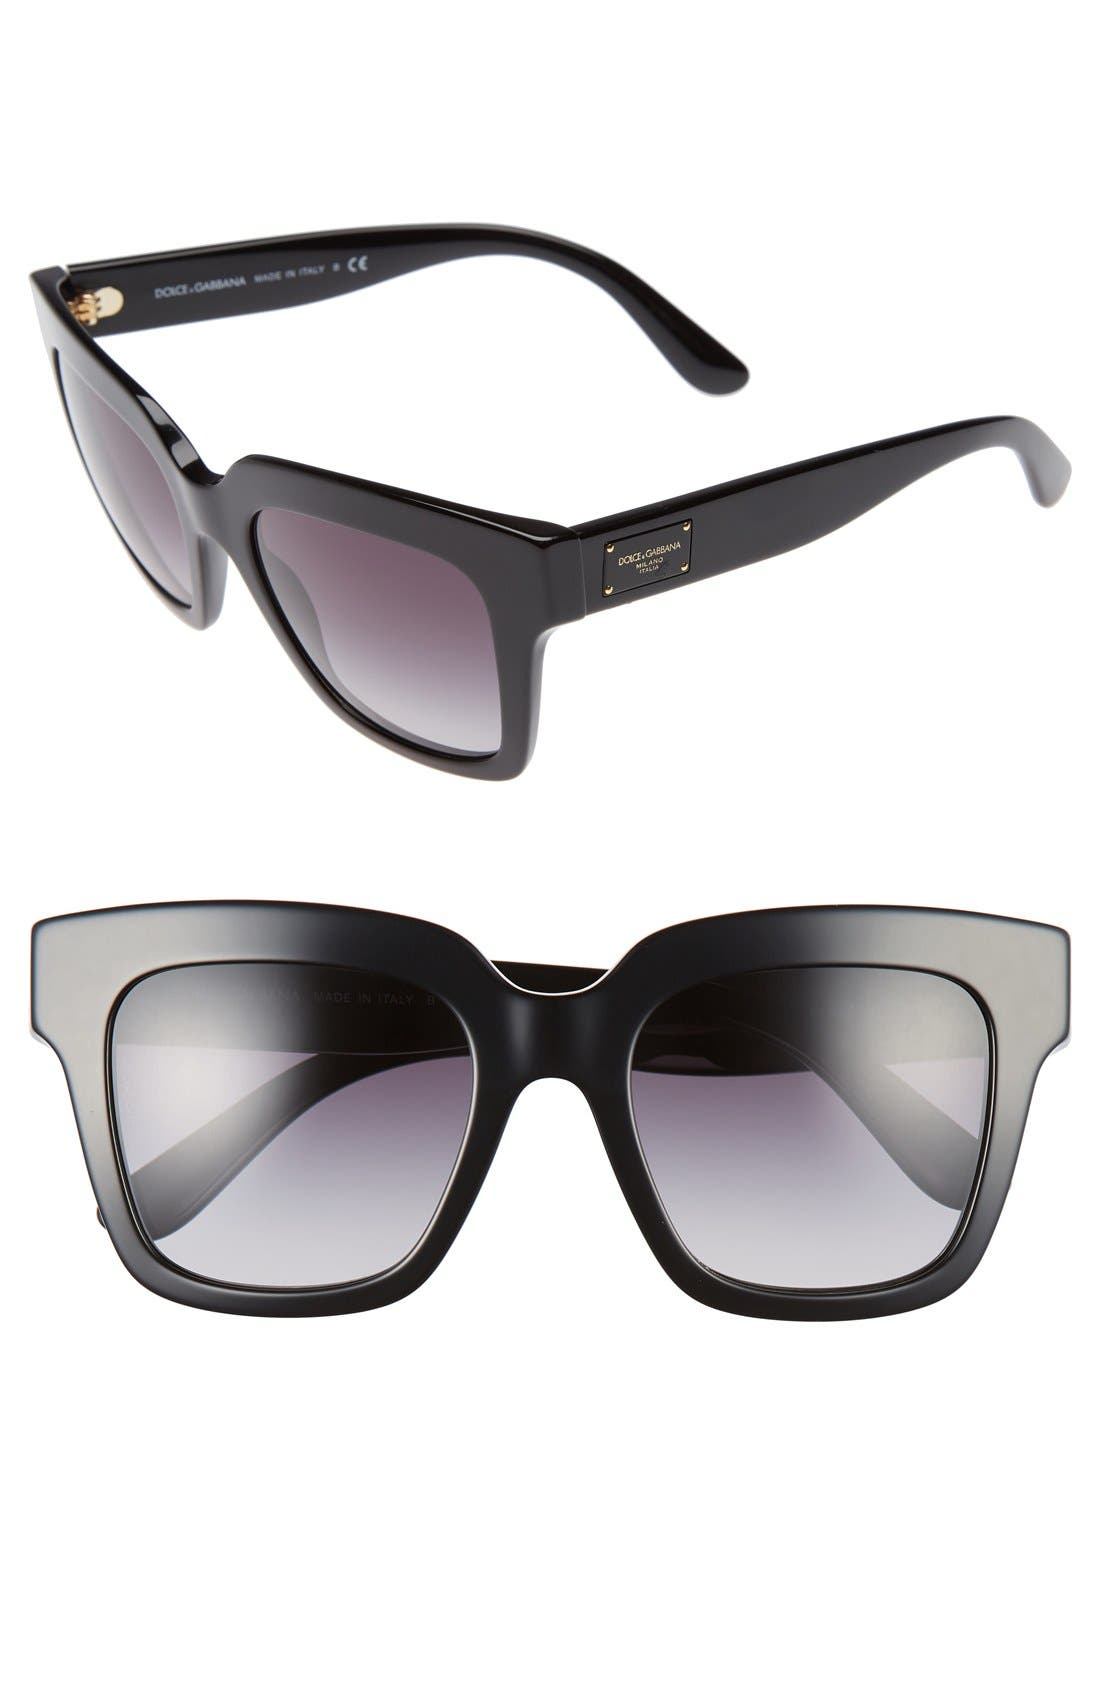 Dolce&Gabbana 51mm Square Sunglasses